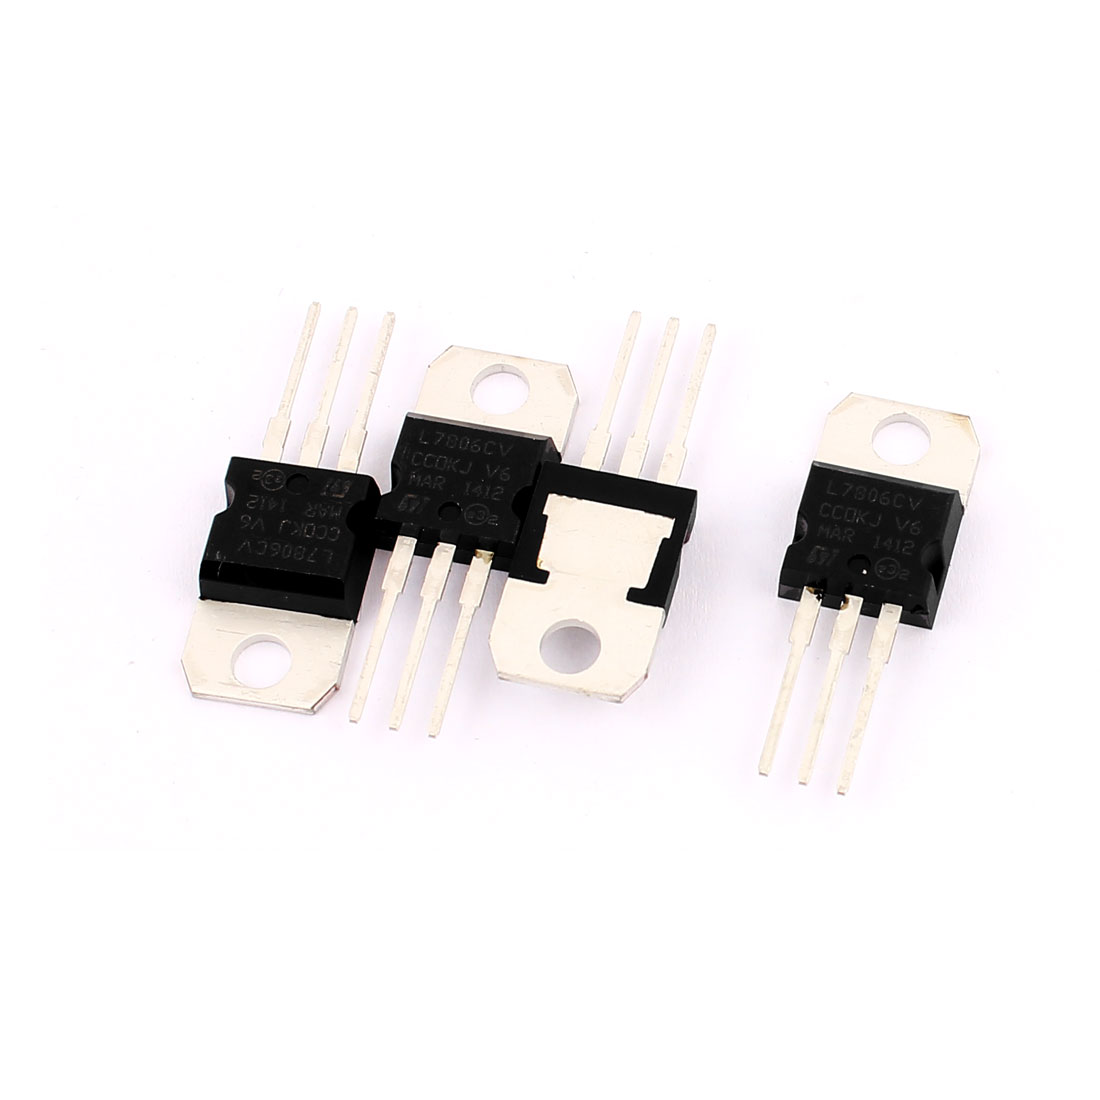 4 Pcs L7806CV 3 Terminals Negative Voltage Regulator 1.5A 6V TO-220 Package